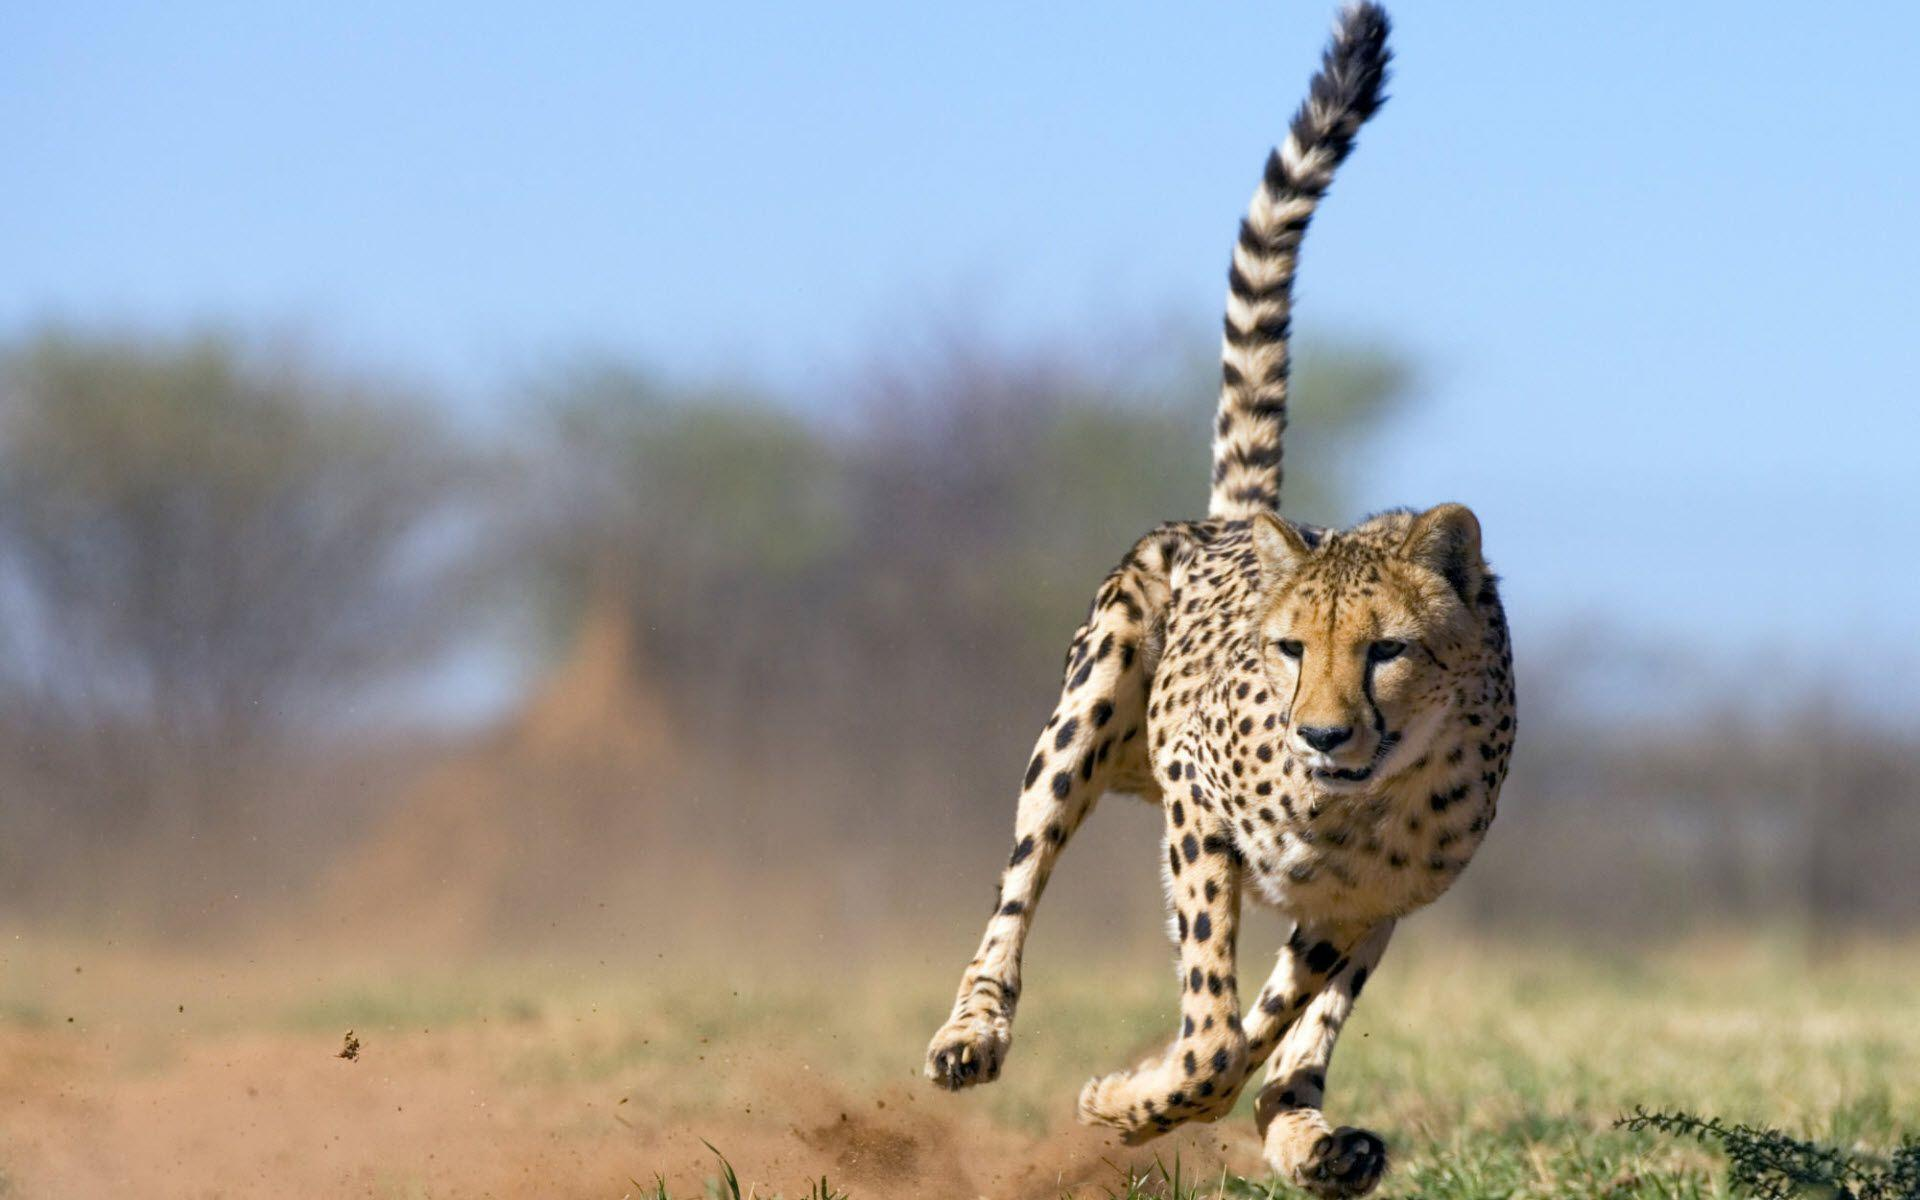 Cheetah Wallpaper for download in laptop and desktop